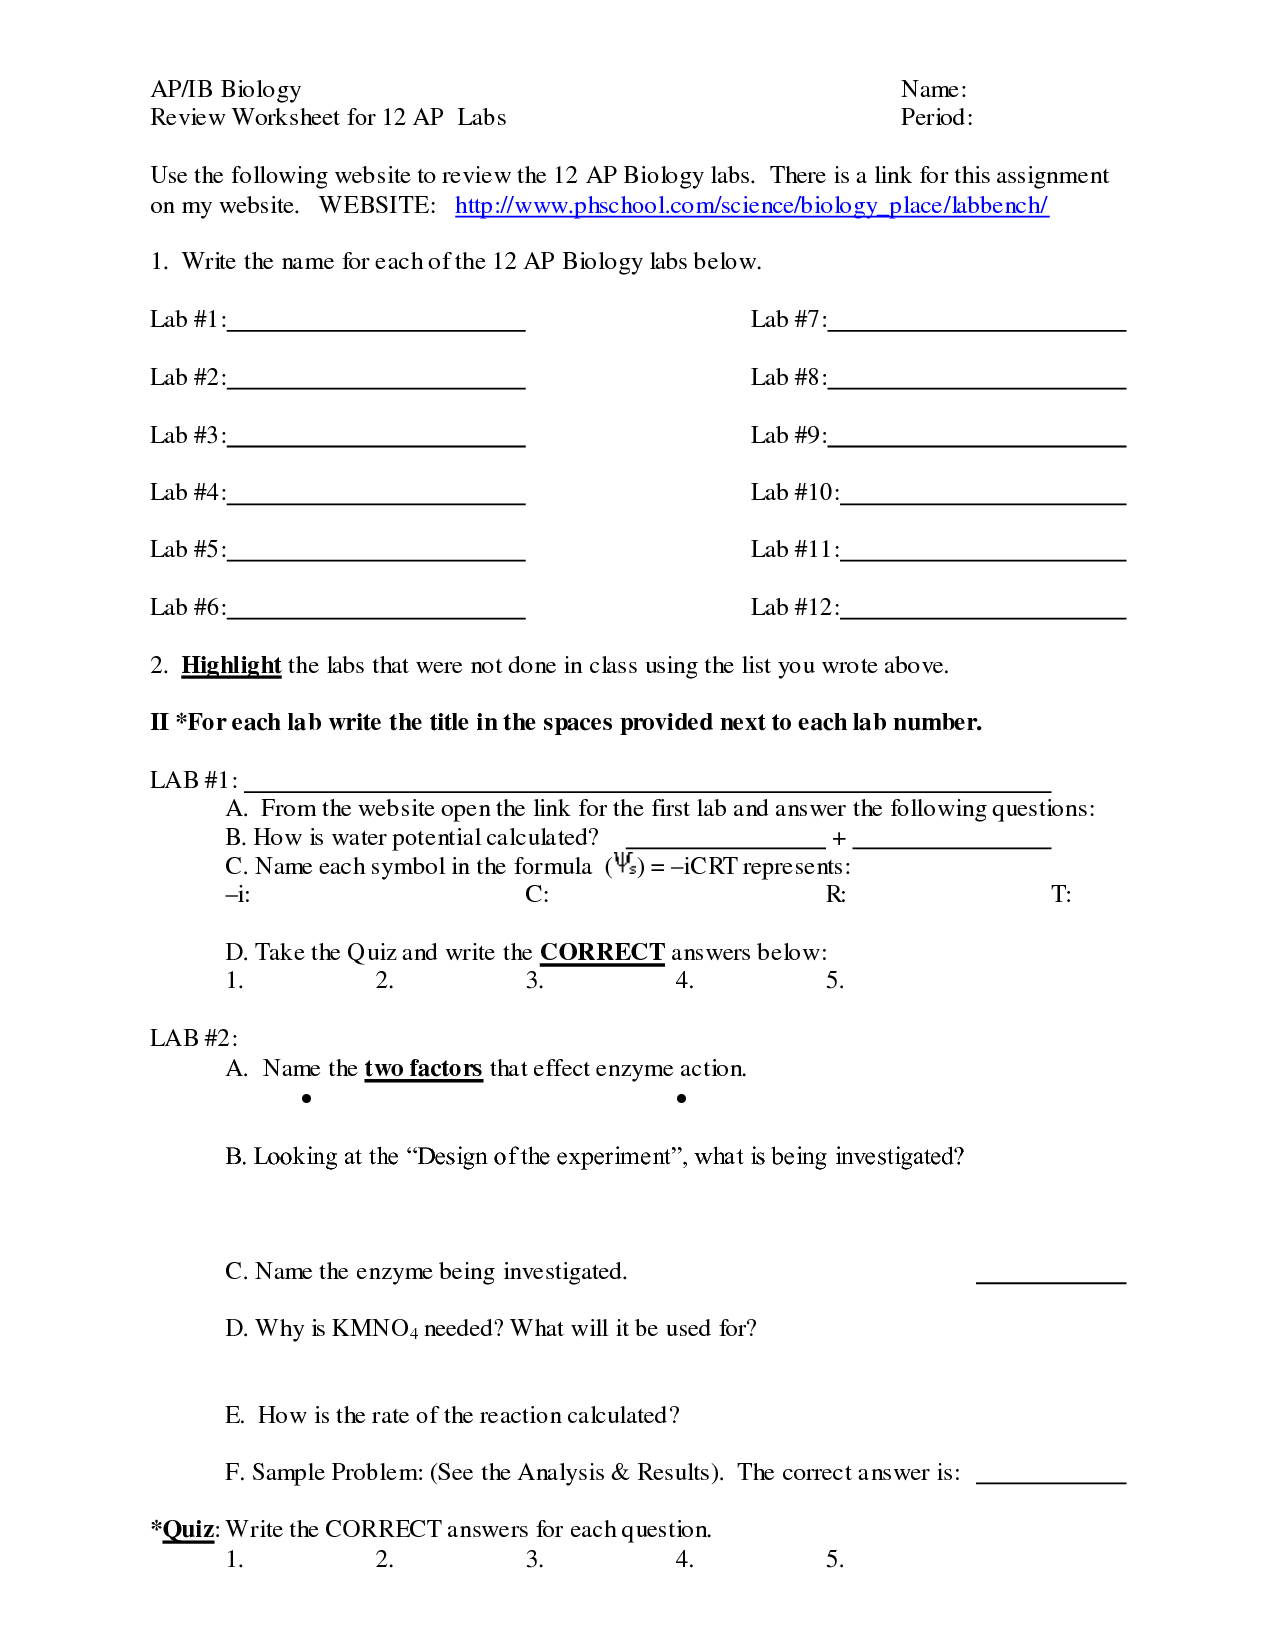 19 Best Images Of Biology Worksheets With Answers